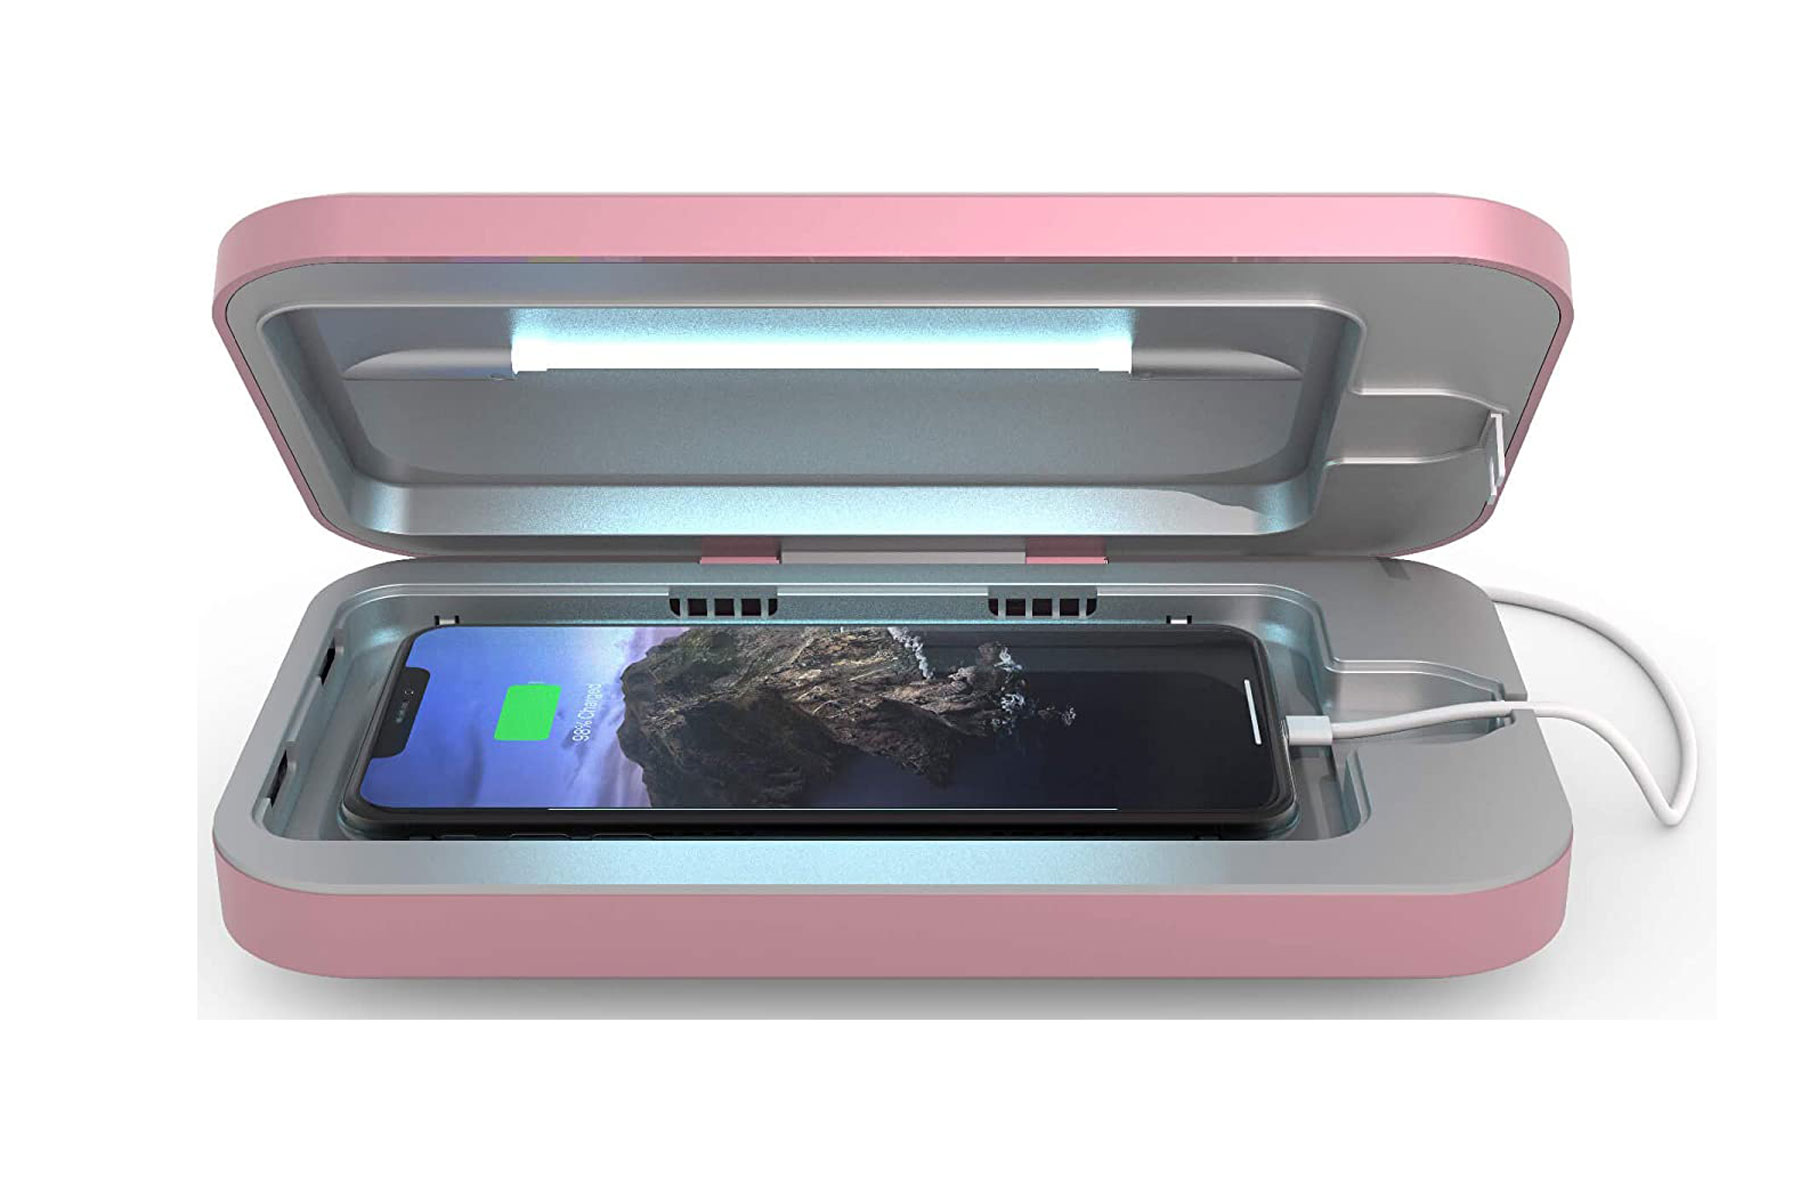 PhoneSoap Sanitizer